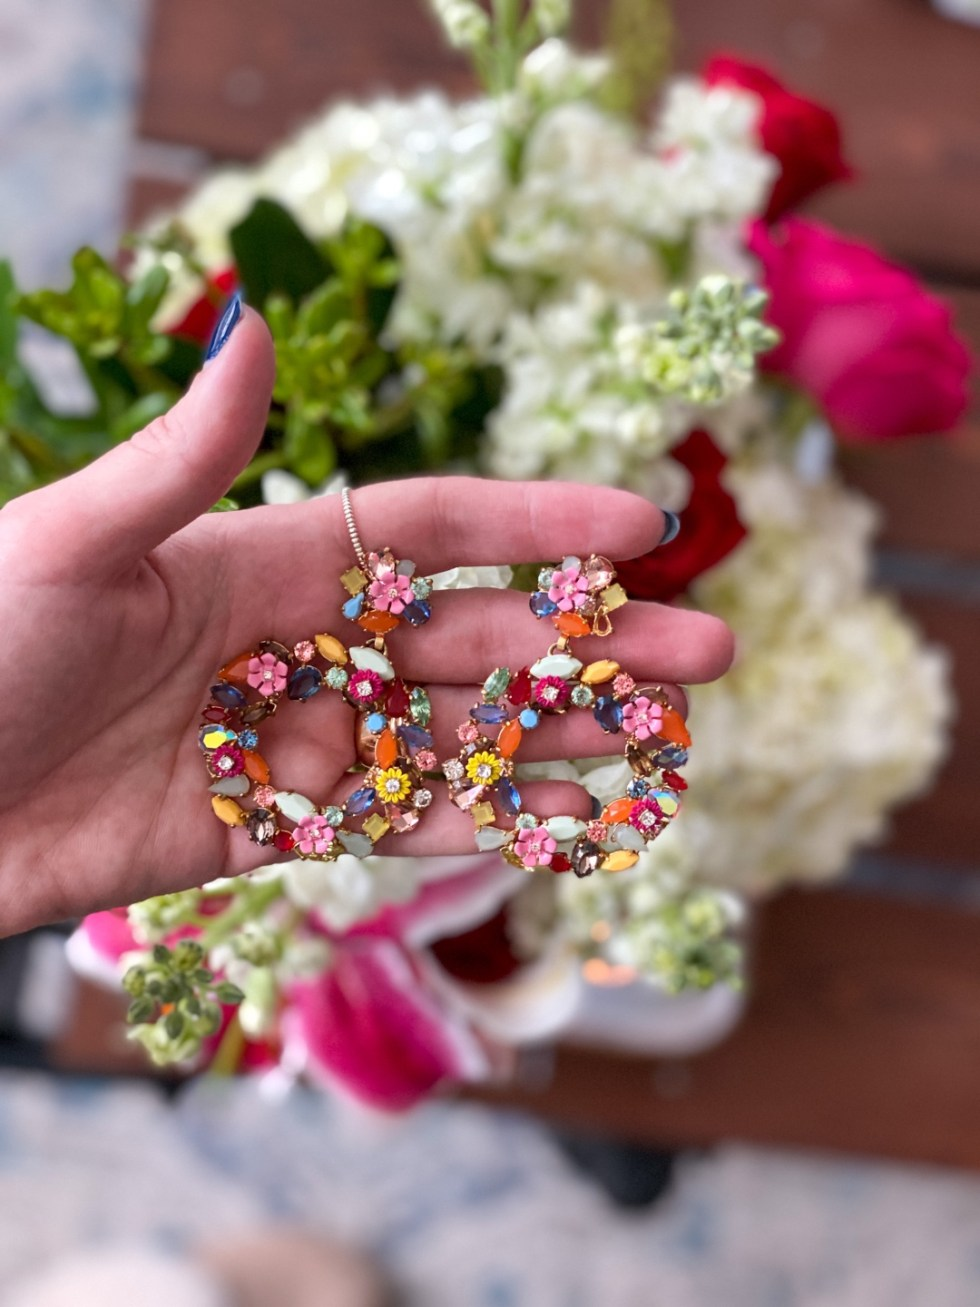 Statement Earrings that I Love - I'm Fixin' To - @imfixintoblog |Statement Earrings by popular NC fashion blog, I'm Fixin' To: image of a woman wearing a pair of J. Crew floral hoop earrings.